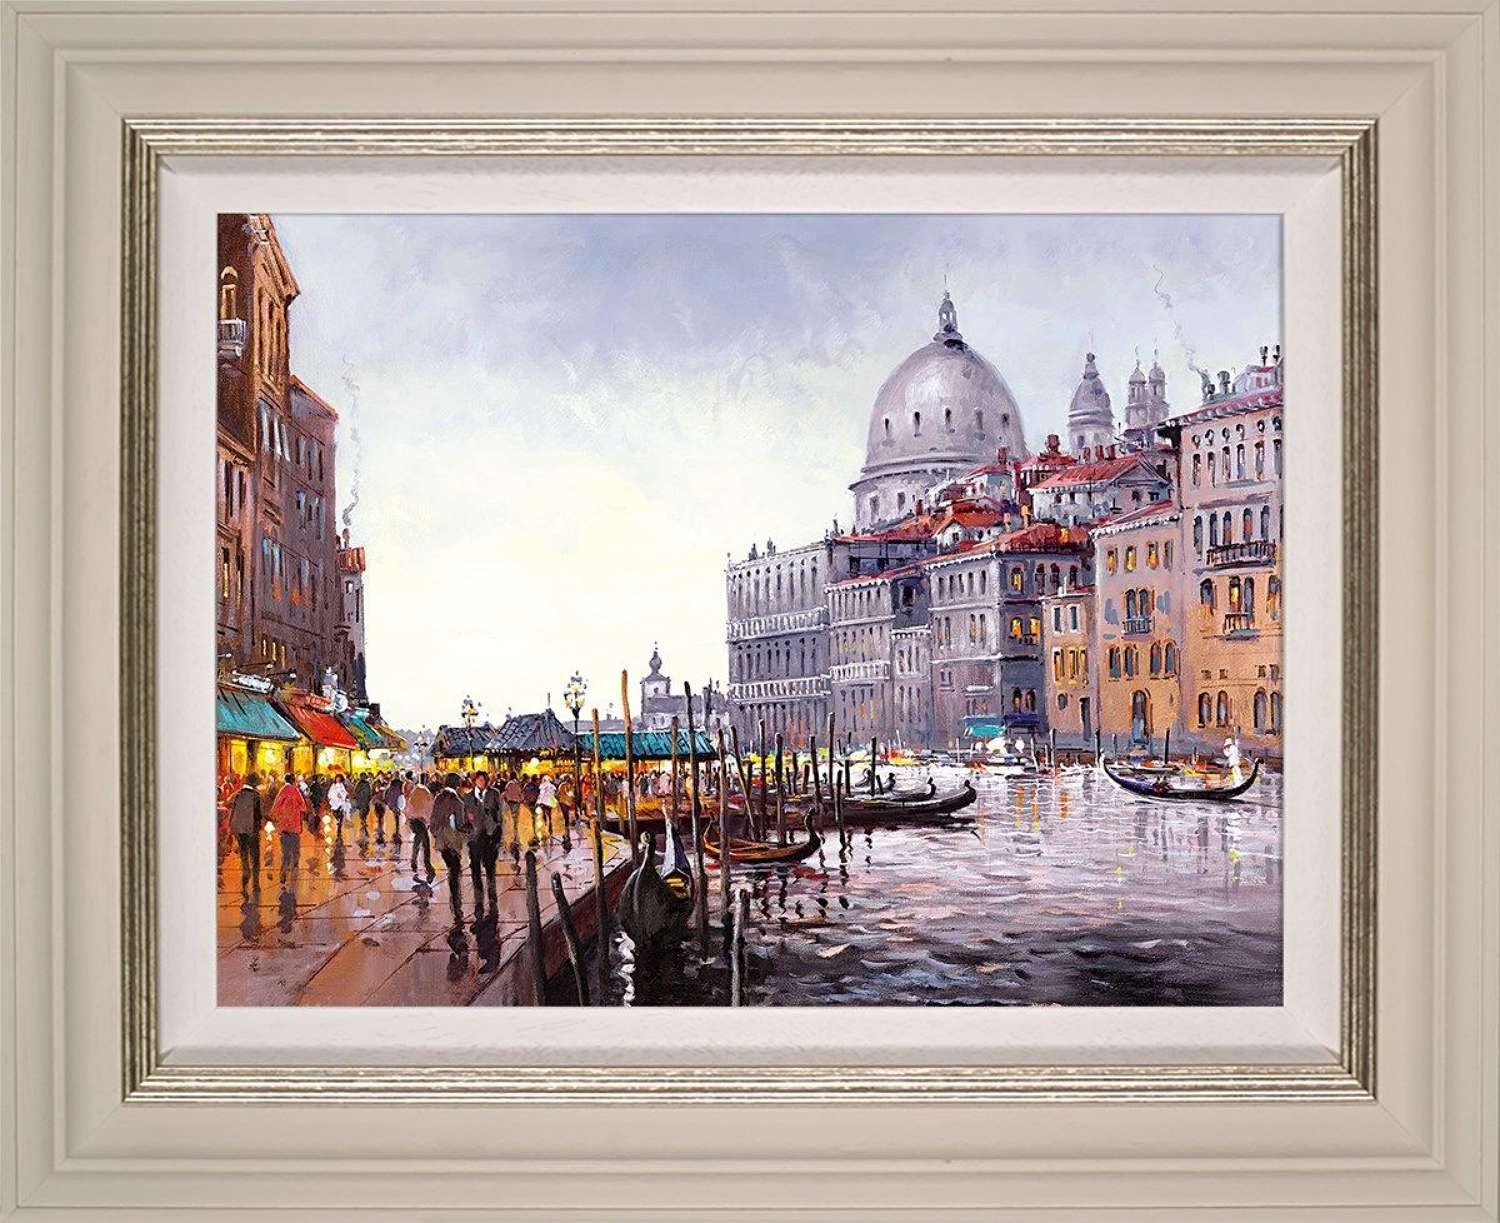 Venetian Lovesong - Framed Canvas Art Print by Henderson Cisz